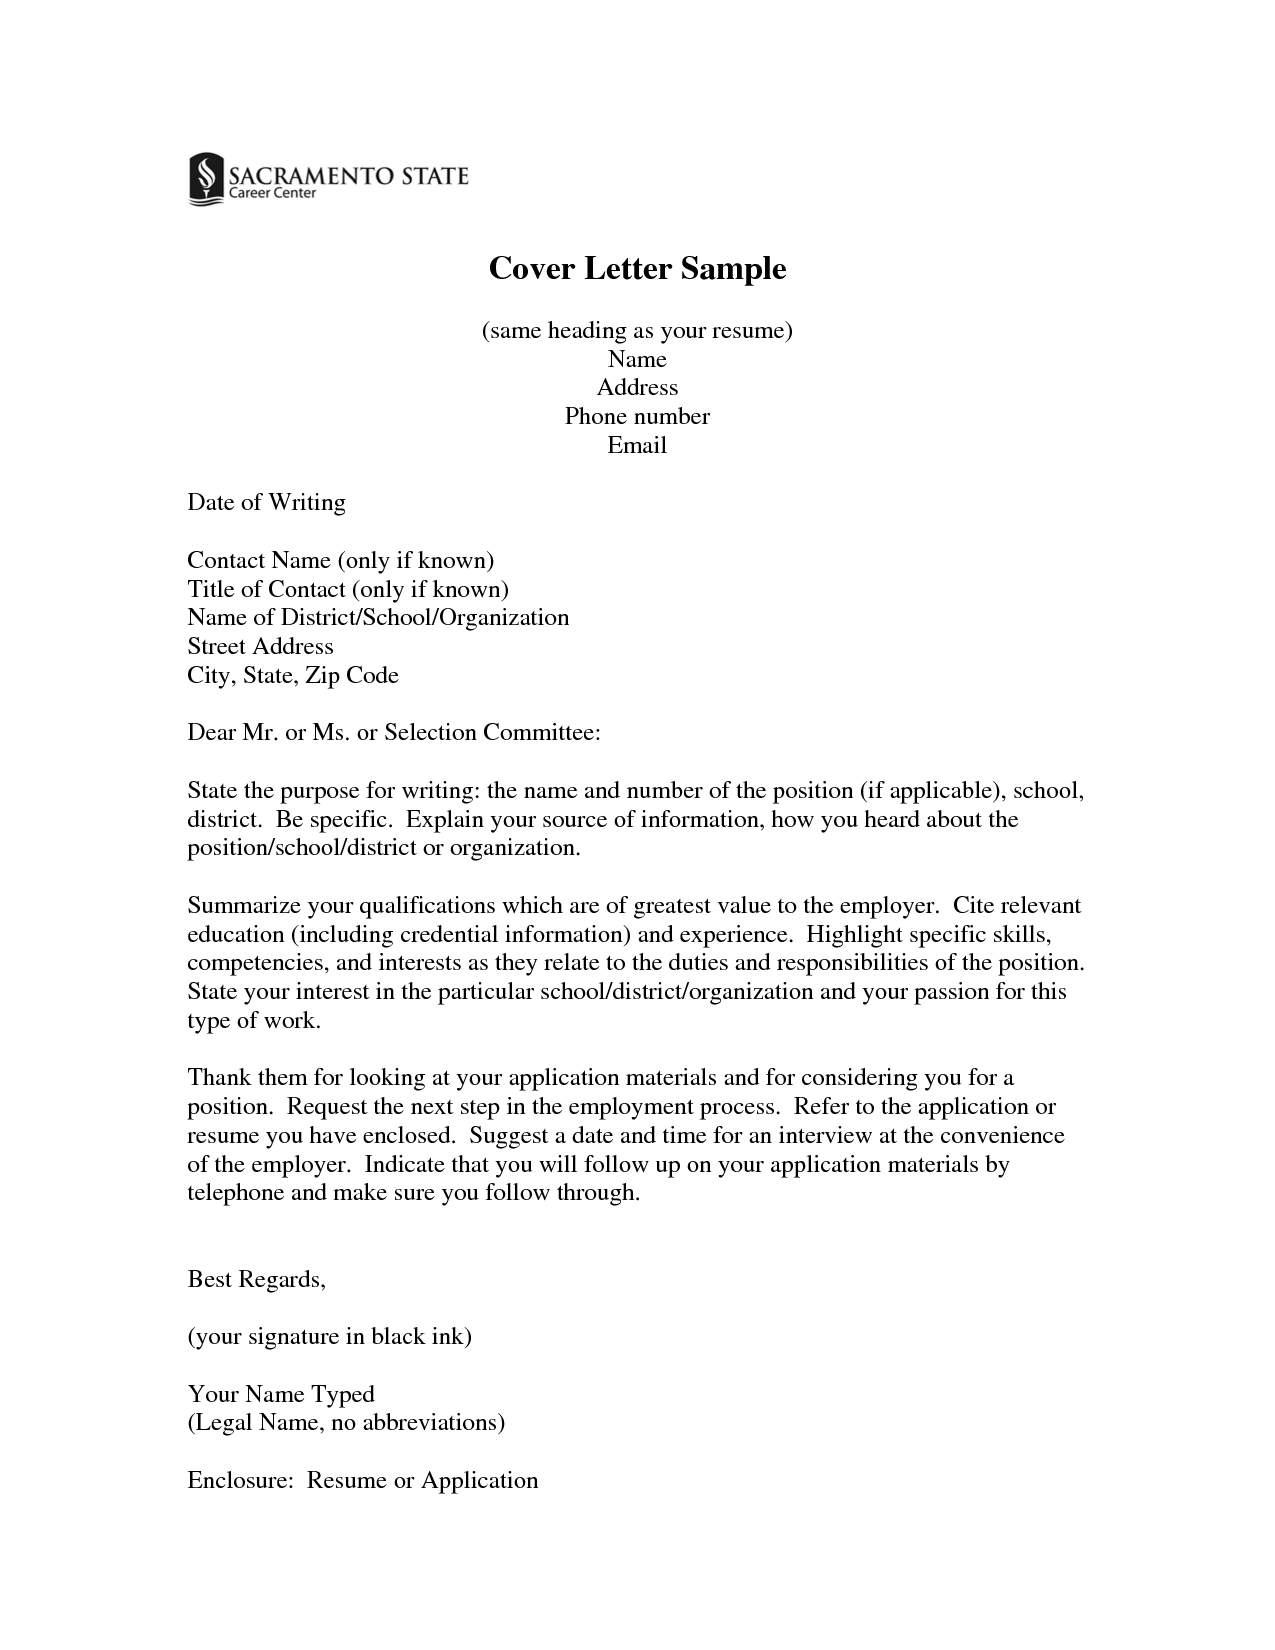 Cover Letter To Resume Same Cover Letters For Resume Cover Letter Sample Same